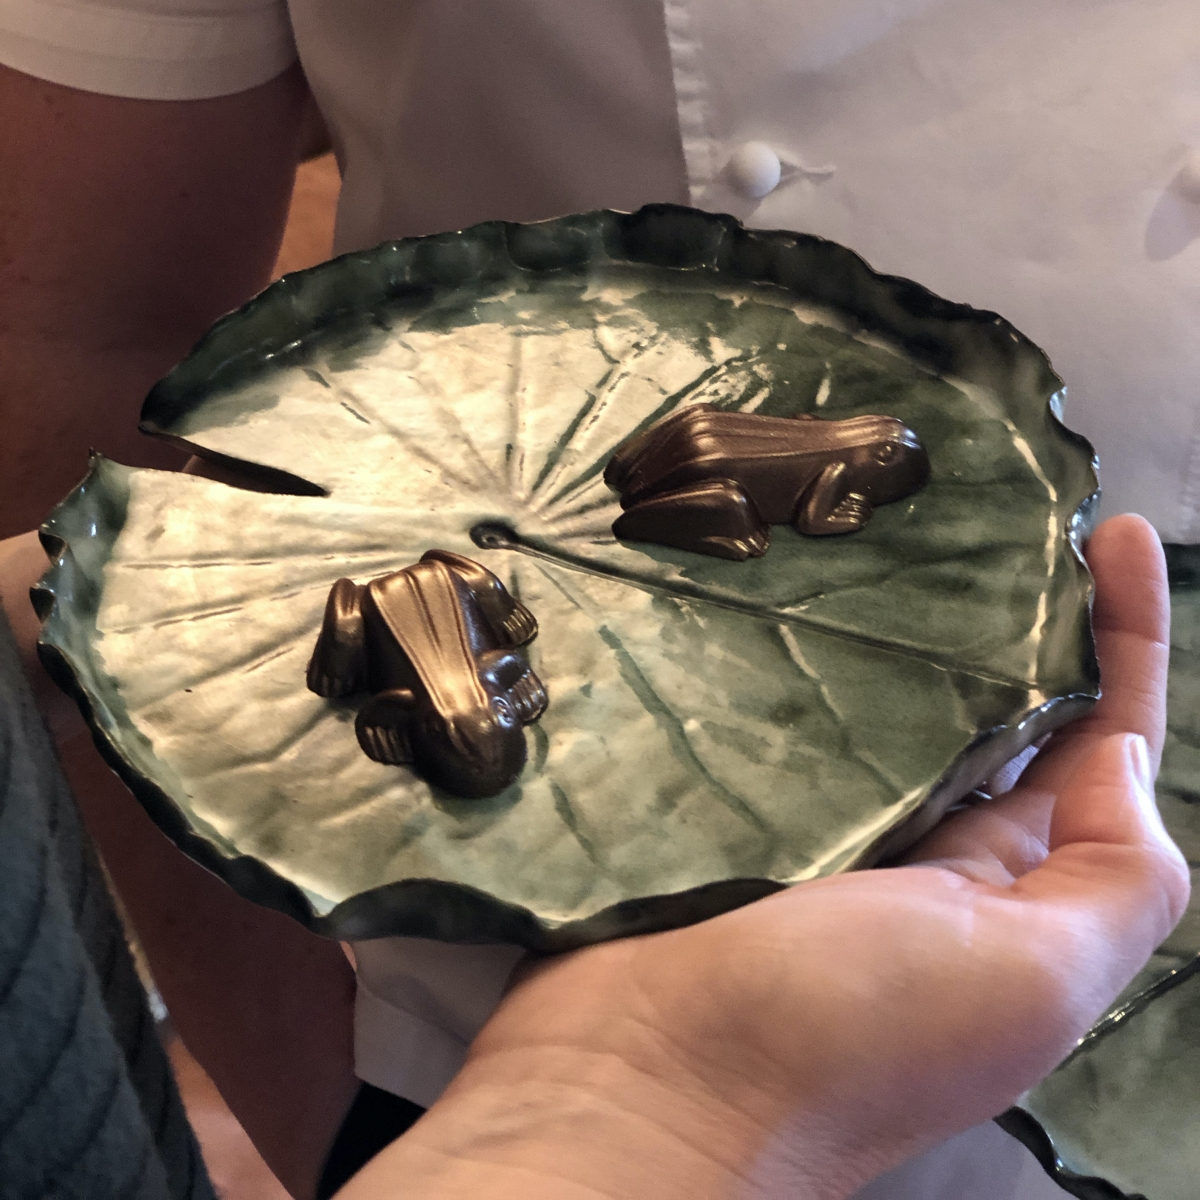 Pond Lily Dishes by Sonya Ceramic Art and Chocolate Frogs by Chef Niall Keating